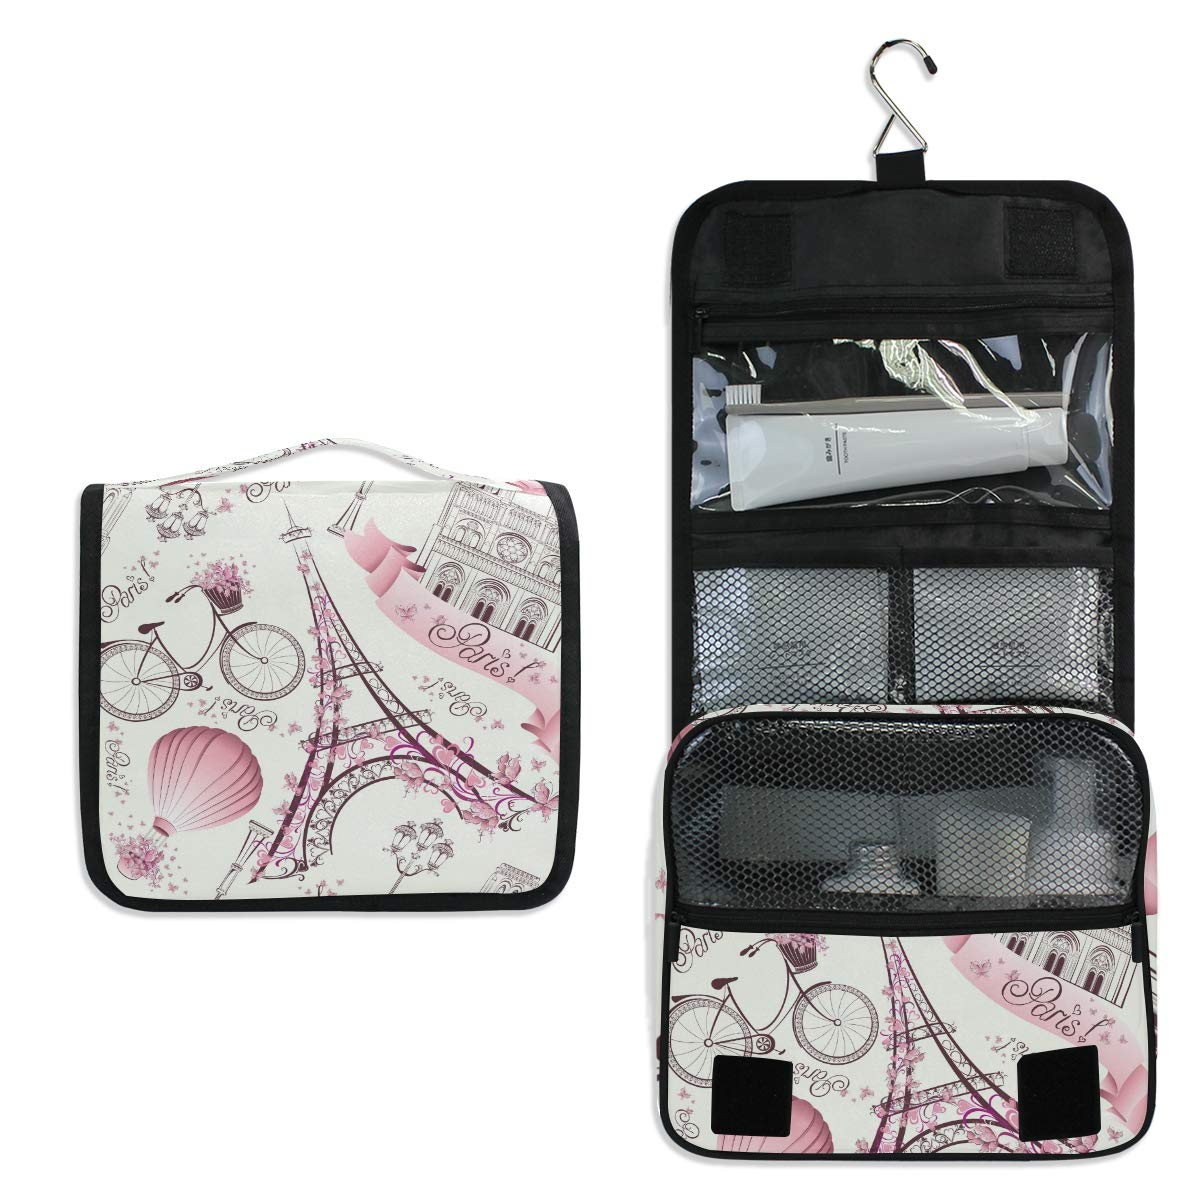 KUWT Hanging Toiletry Bag Paris Eiffel Tower Flower Cosmetic Travel Bag Portable Makeup Organizer for Cosmetics, Toiletries and Travel Accessories